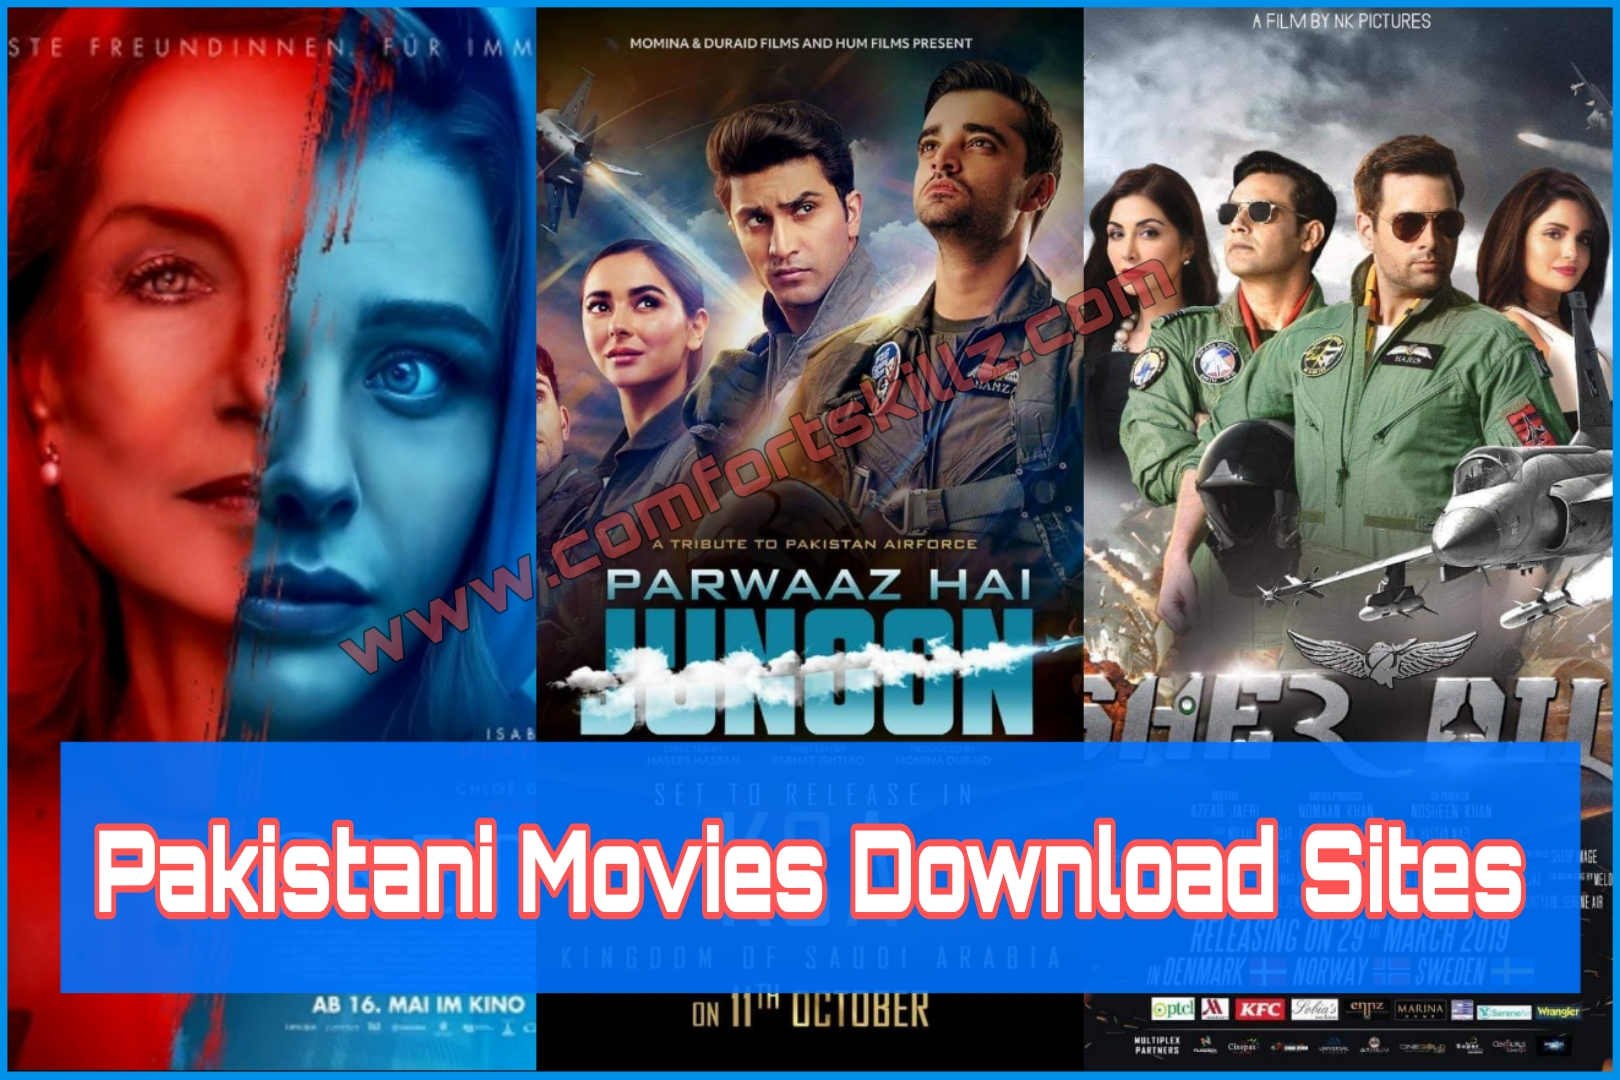 Websites Watch Download Pakistani Movies for Free